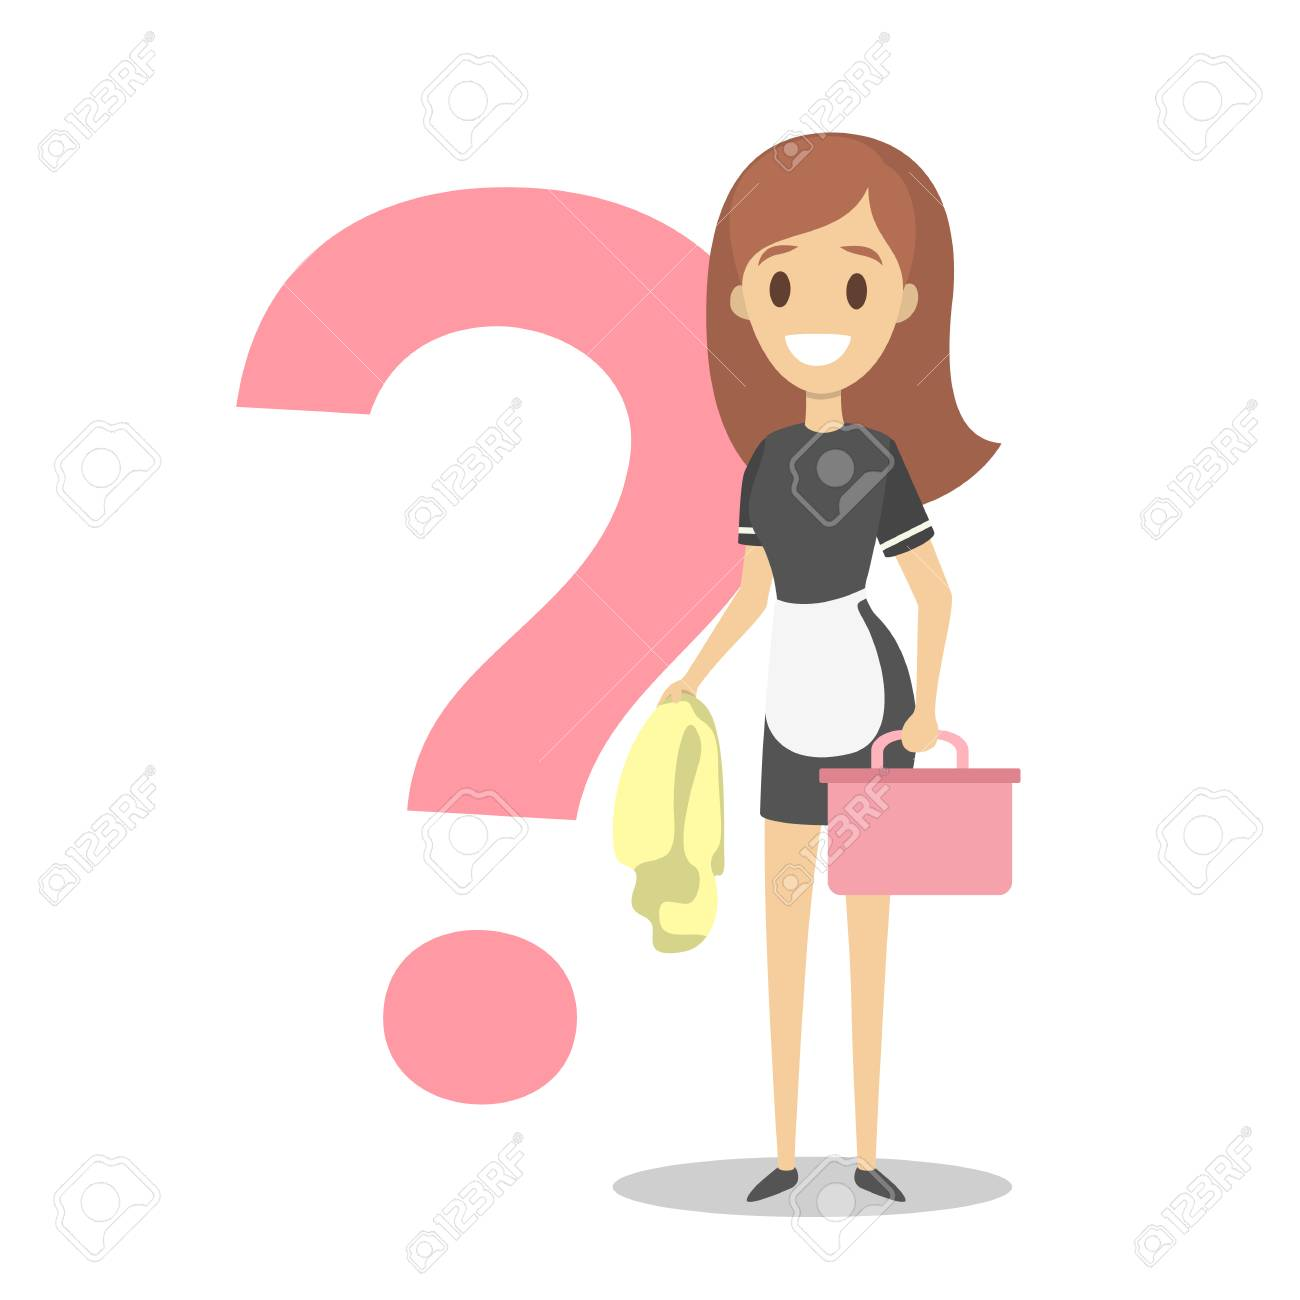 Female cleaner or hotel maid with cleaning equipment. Ask service worker. Big question mark behind pretty girl in uniform. Isolated flat vector illustration - 109808244